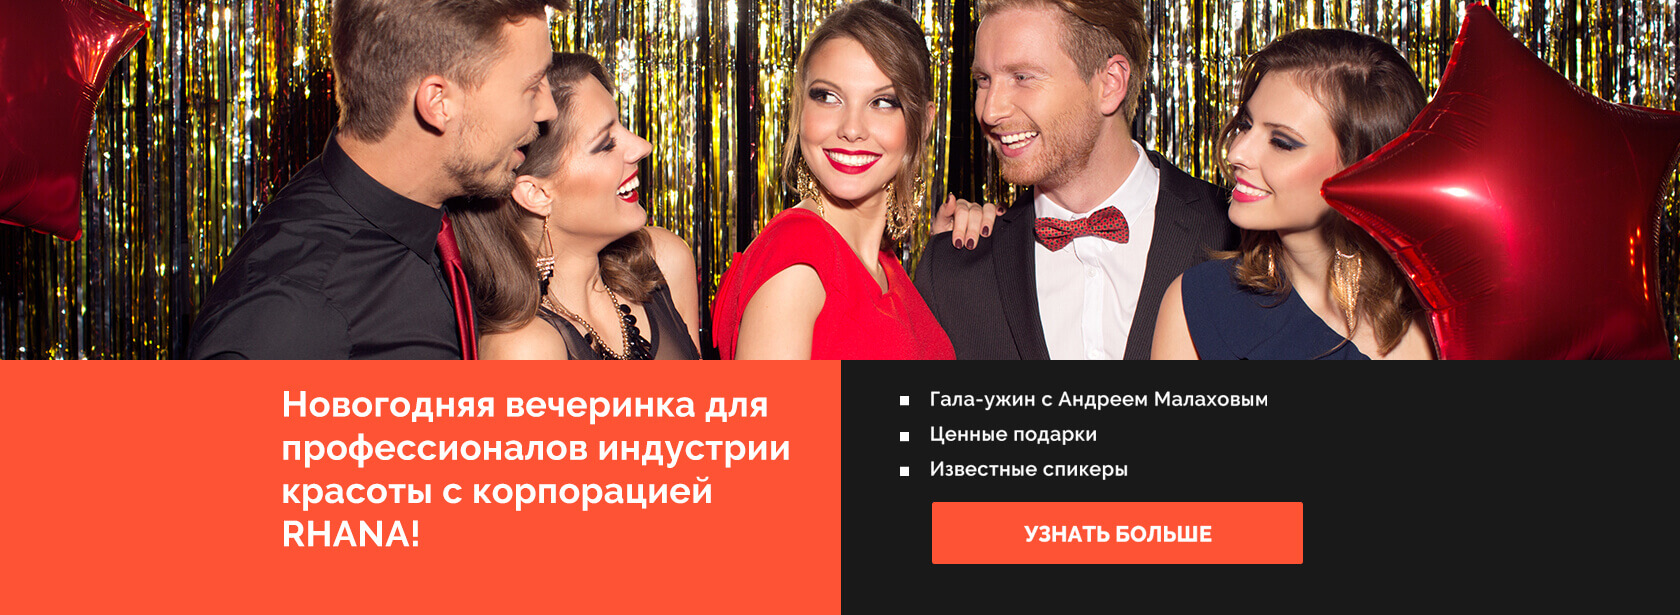 New Year Party с корпорацией RHANA.